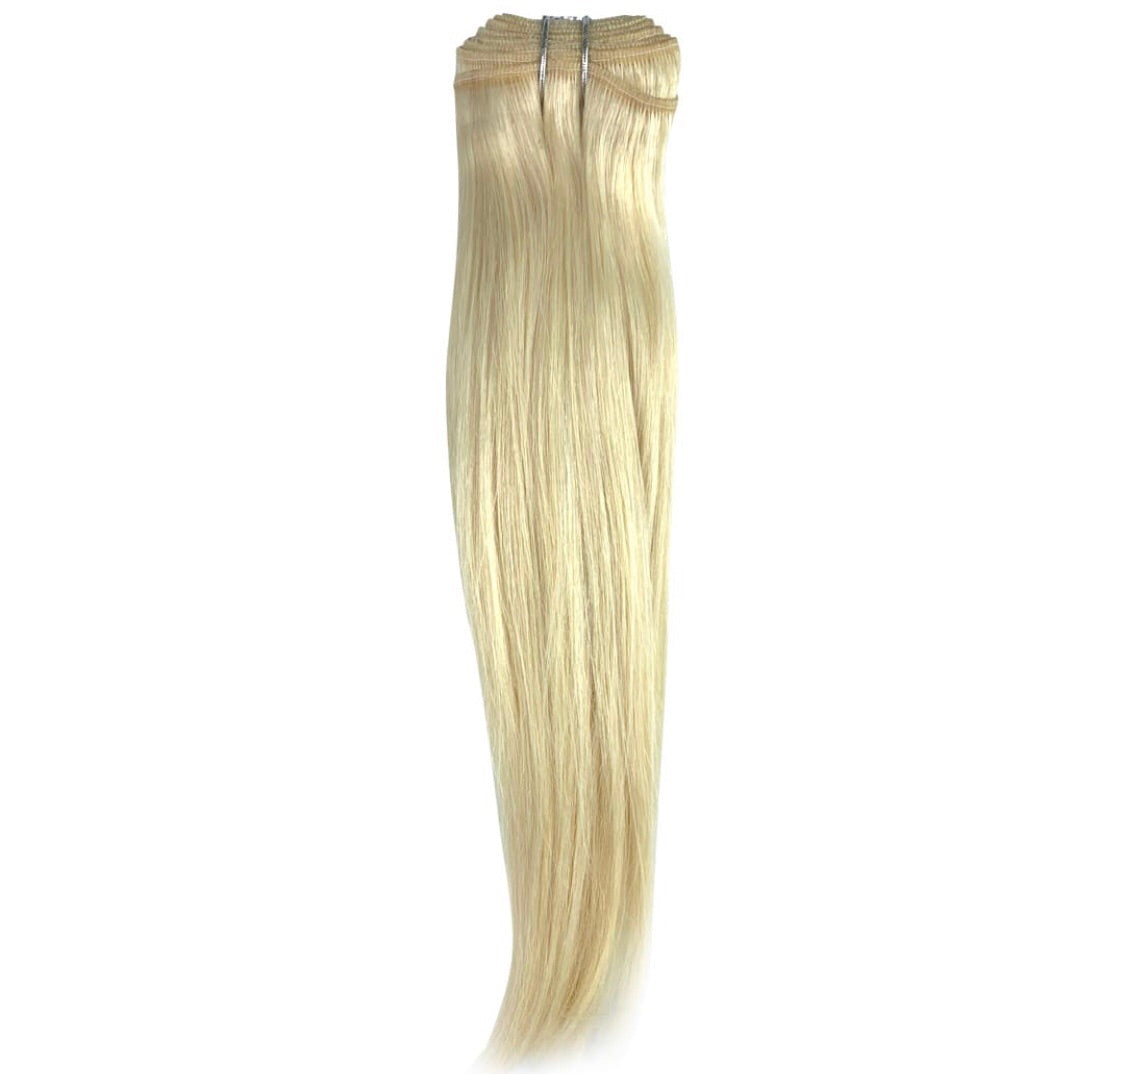 Blonde Straight Bundle Deals - Limited Time Only